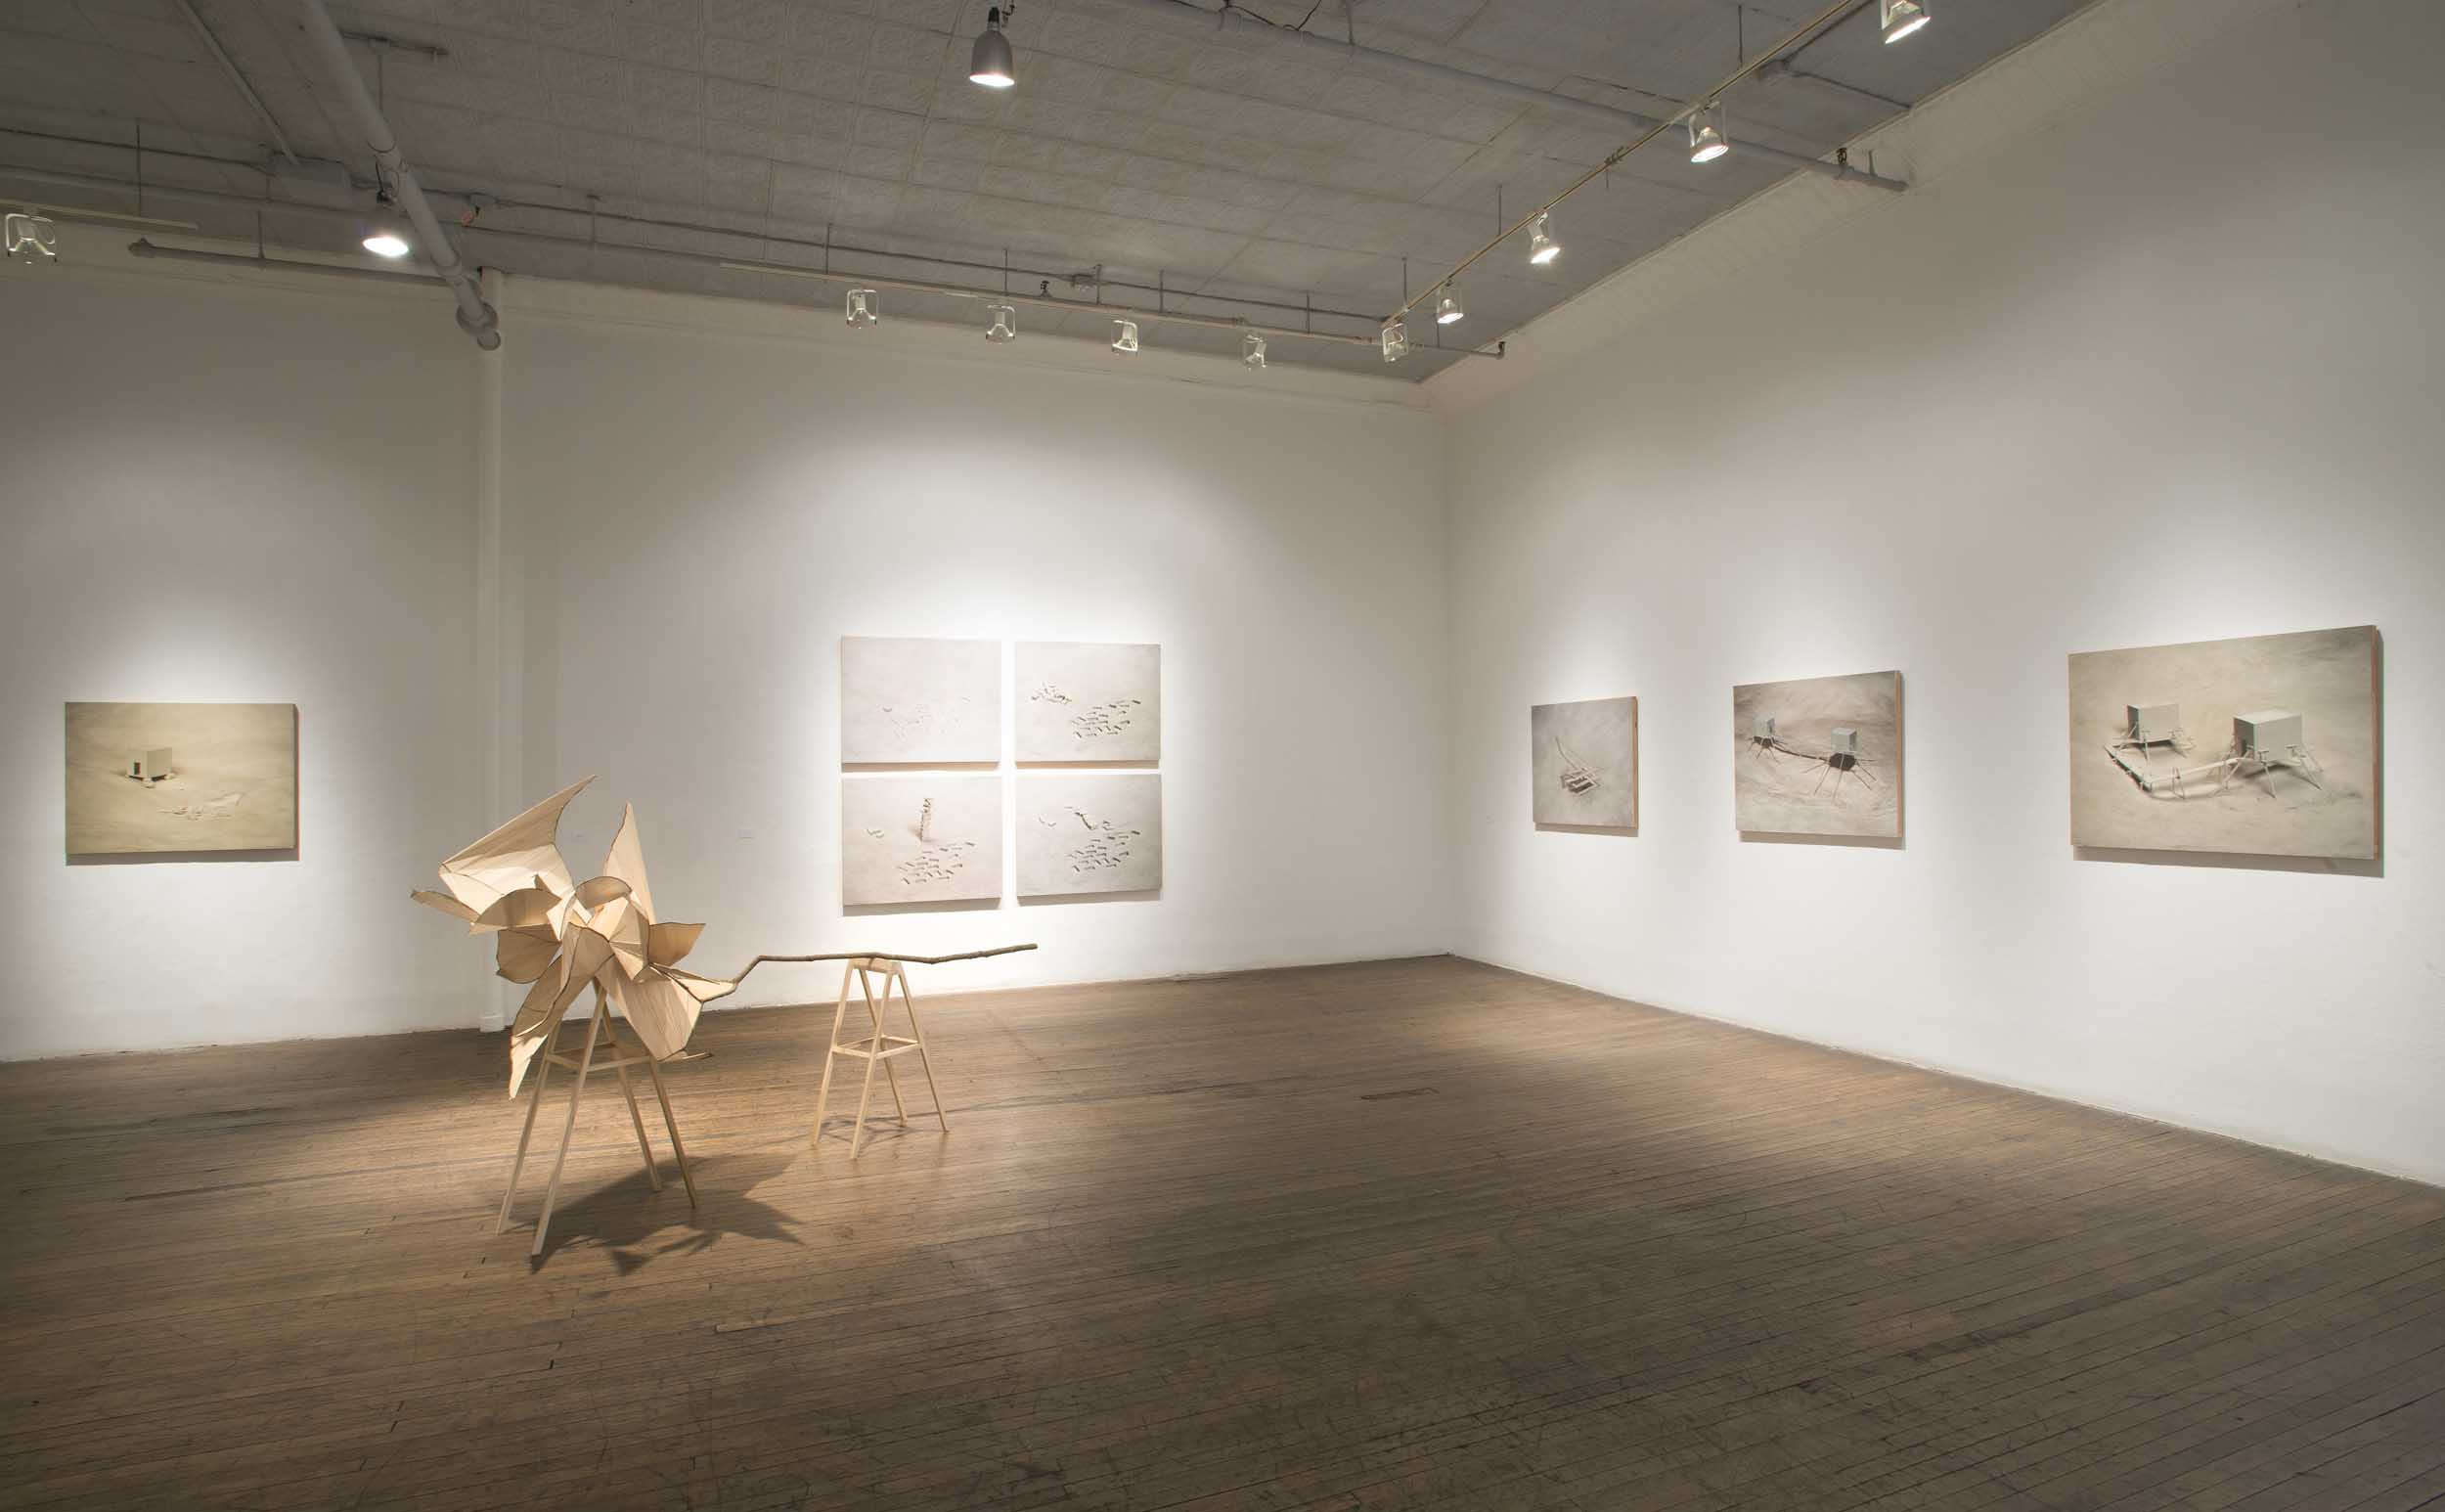 Wexler--Breaking Ground, 2014 (install view of South Gallery D)